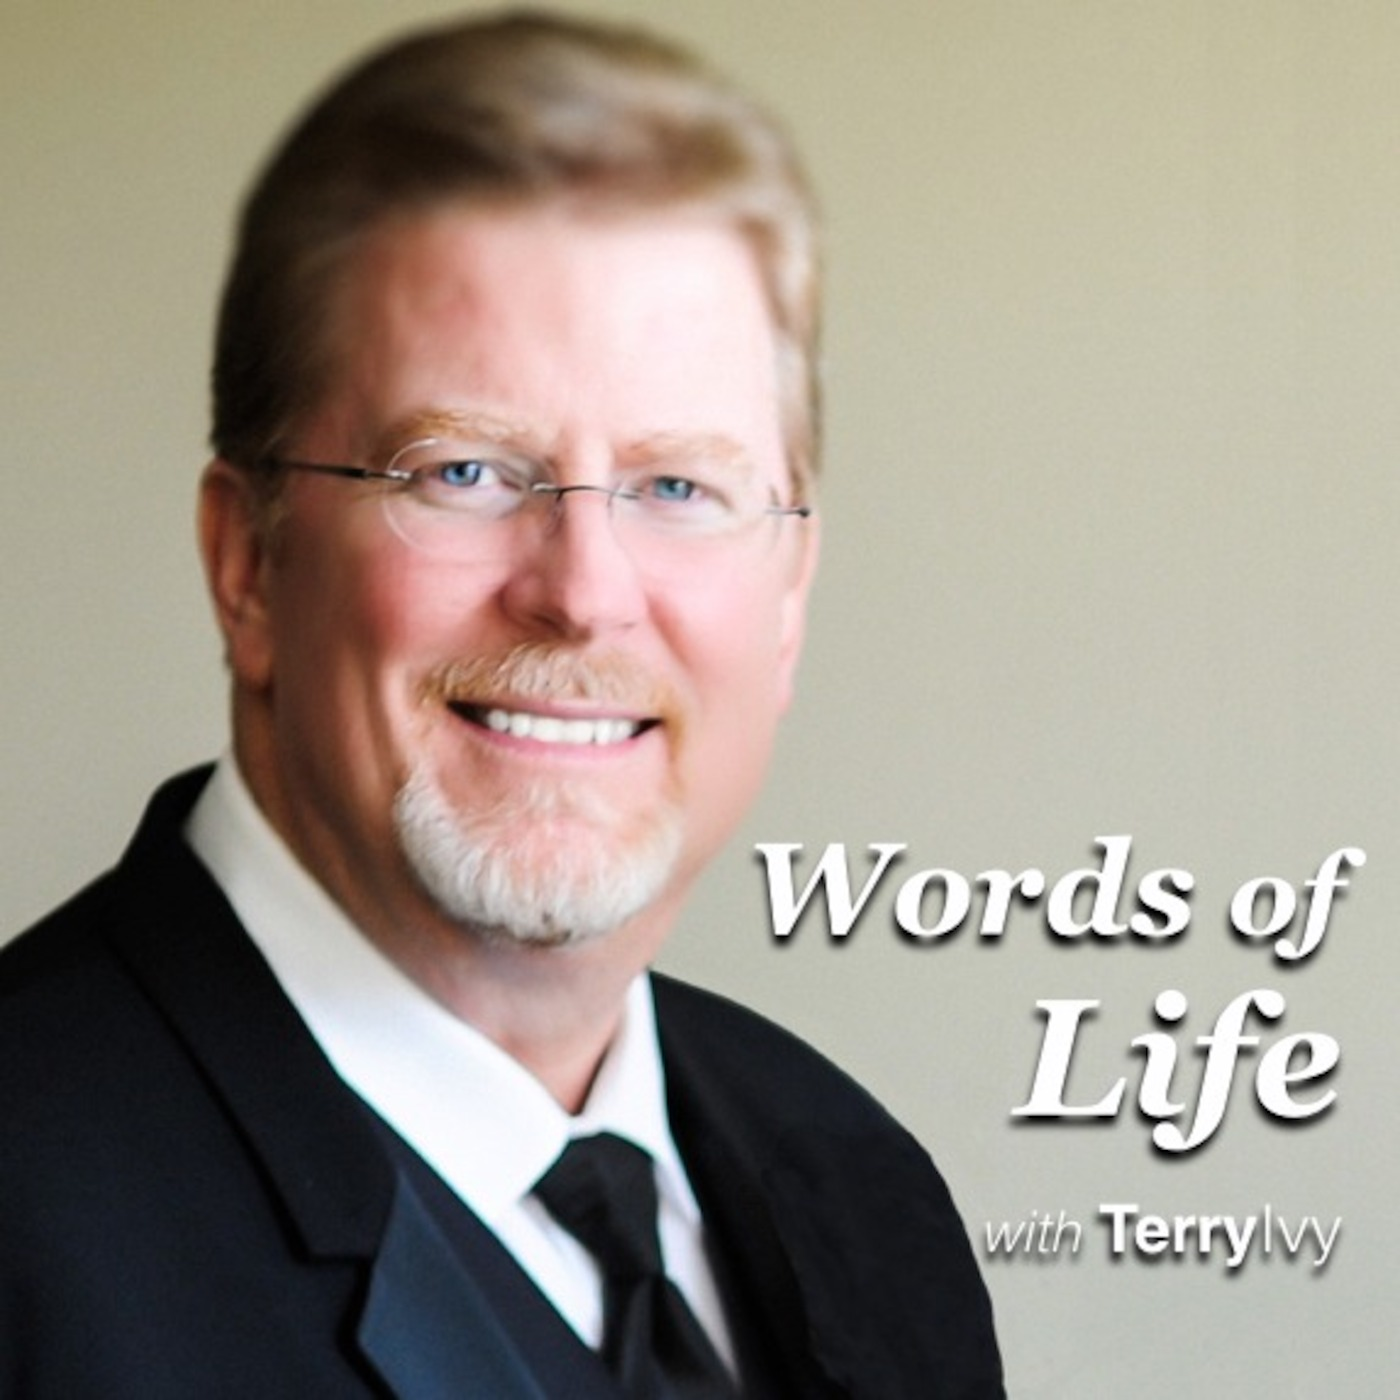 Words of Life with Terry Ivy